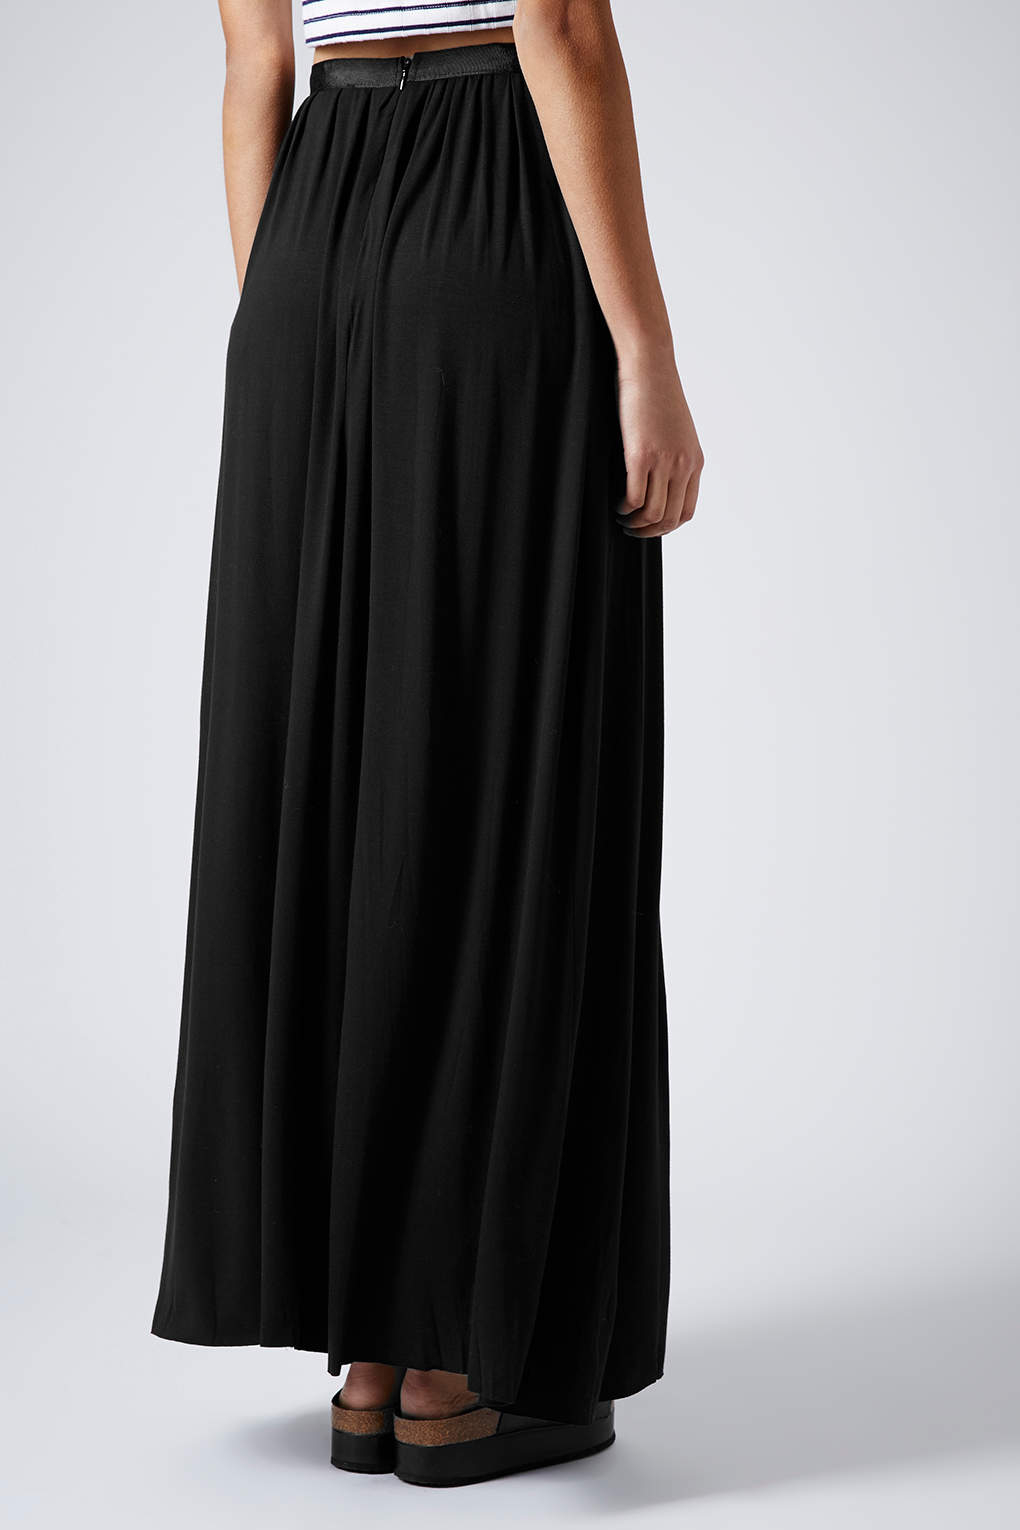 Lyst - Topshop Black Jersey Pleat Maxi Skirt in Black